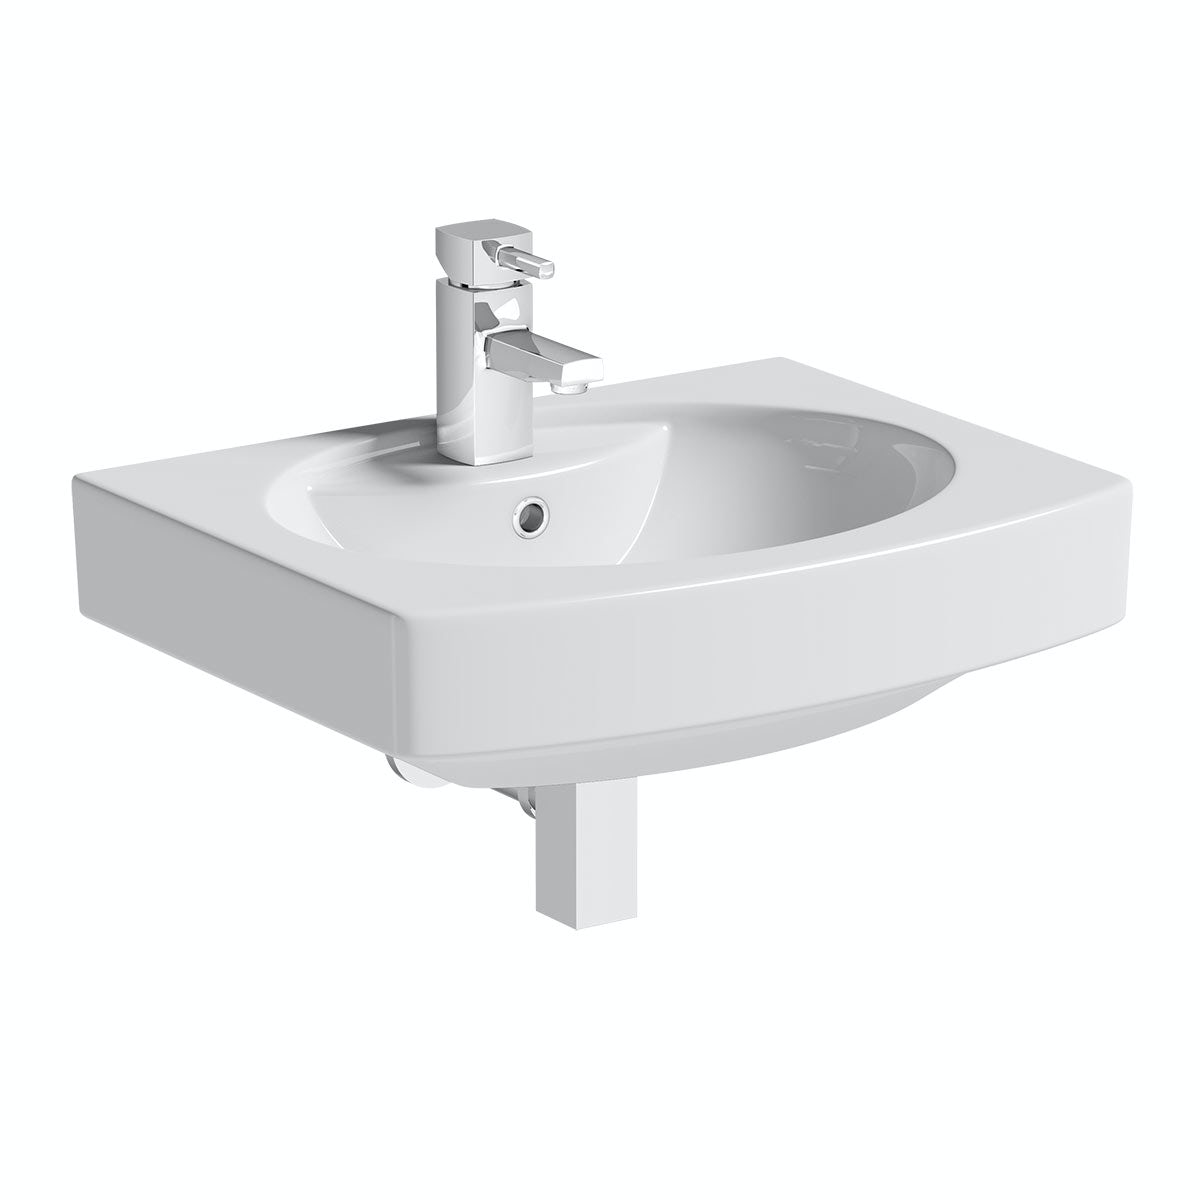 Orchard Wye 1 tap hole wall hung basin 555mm with waste